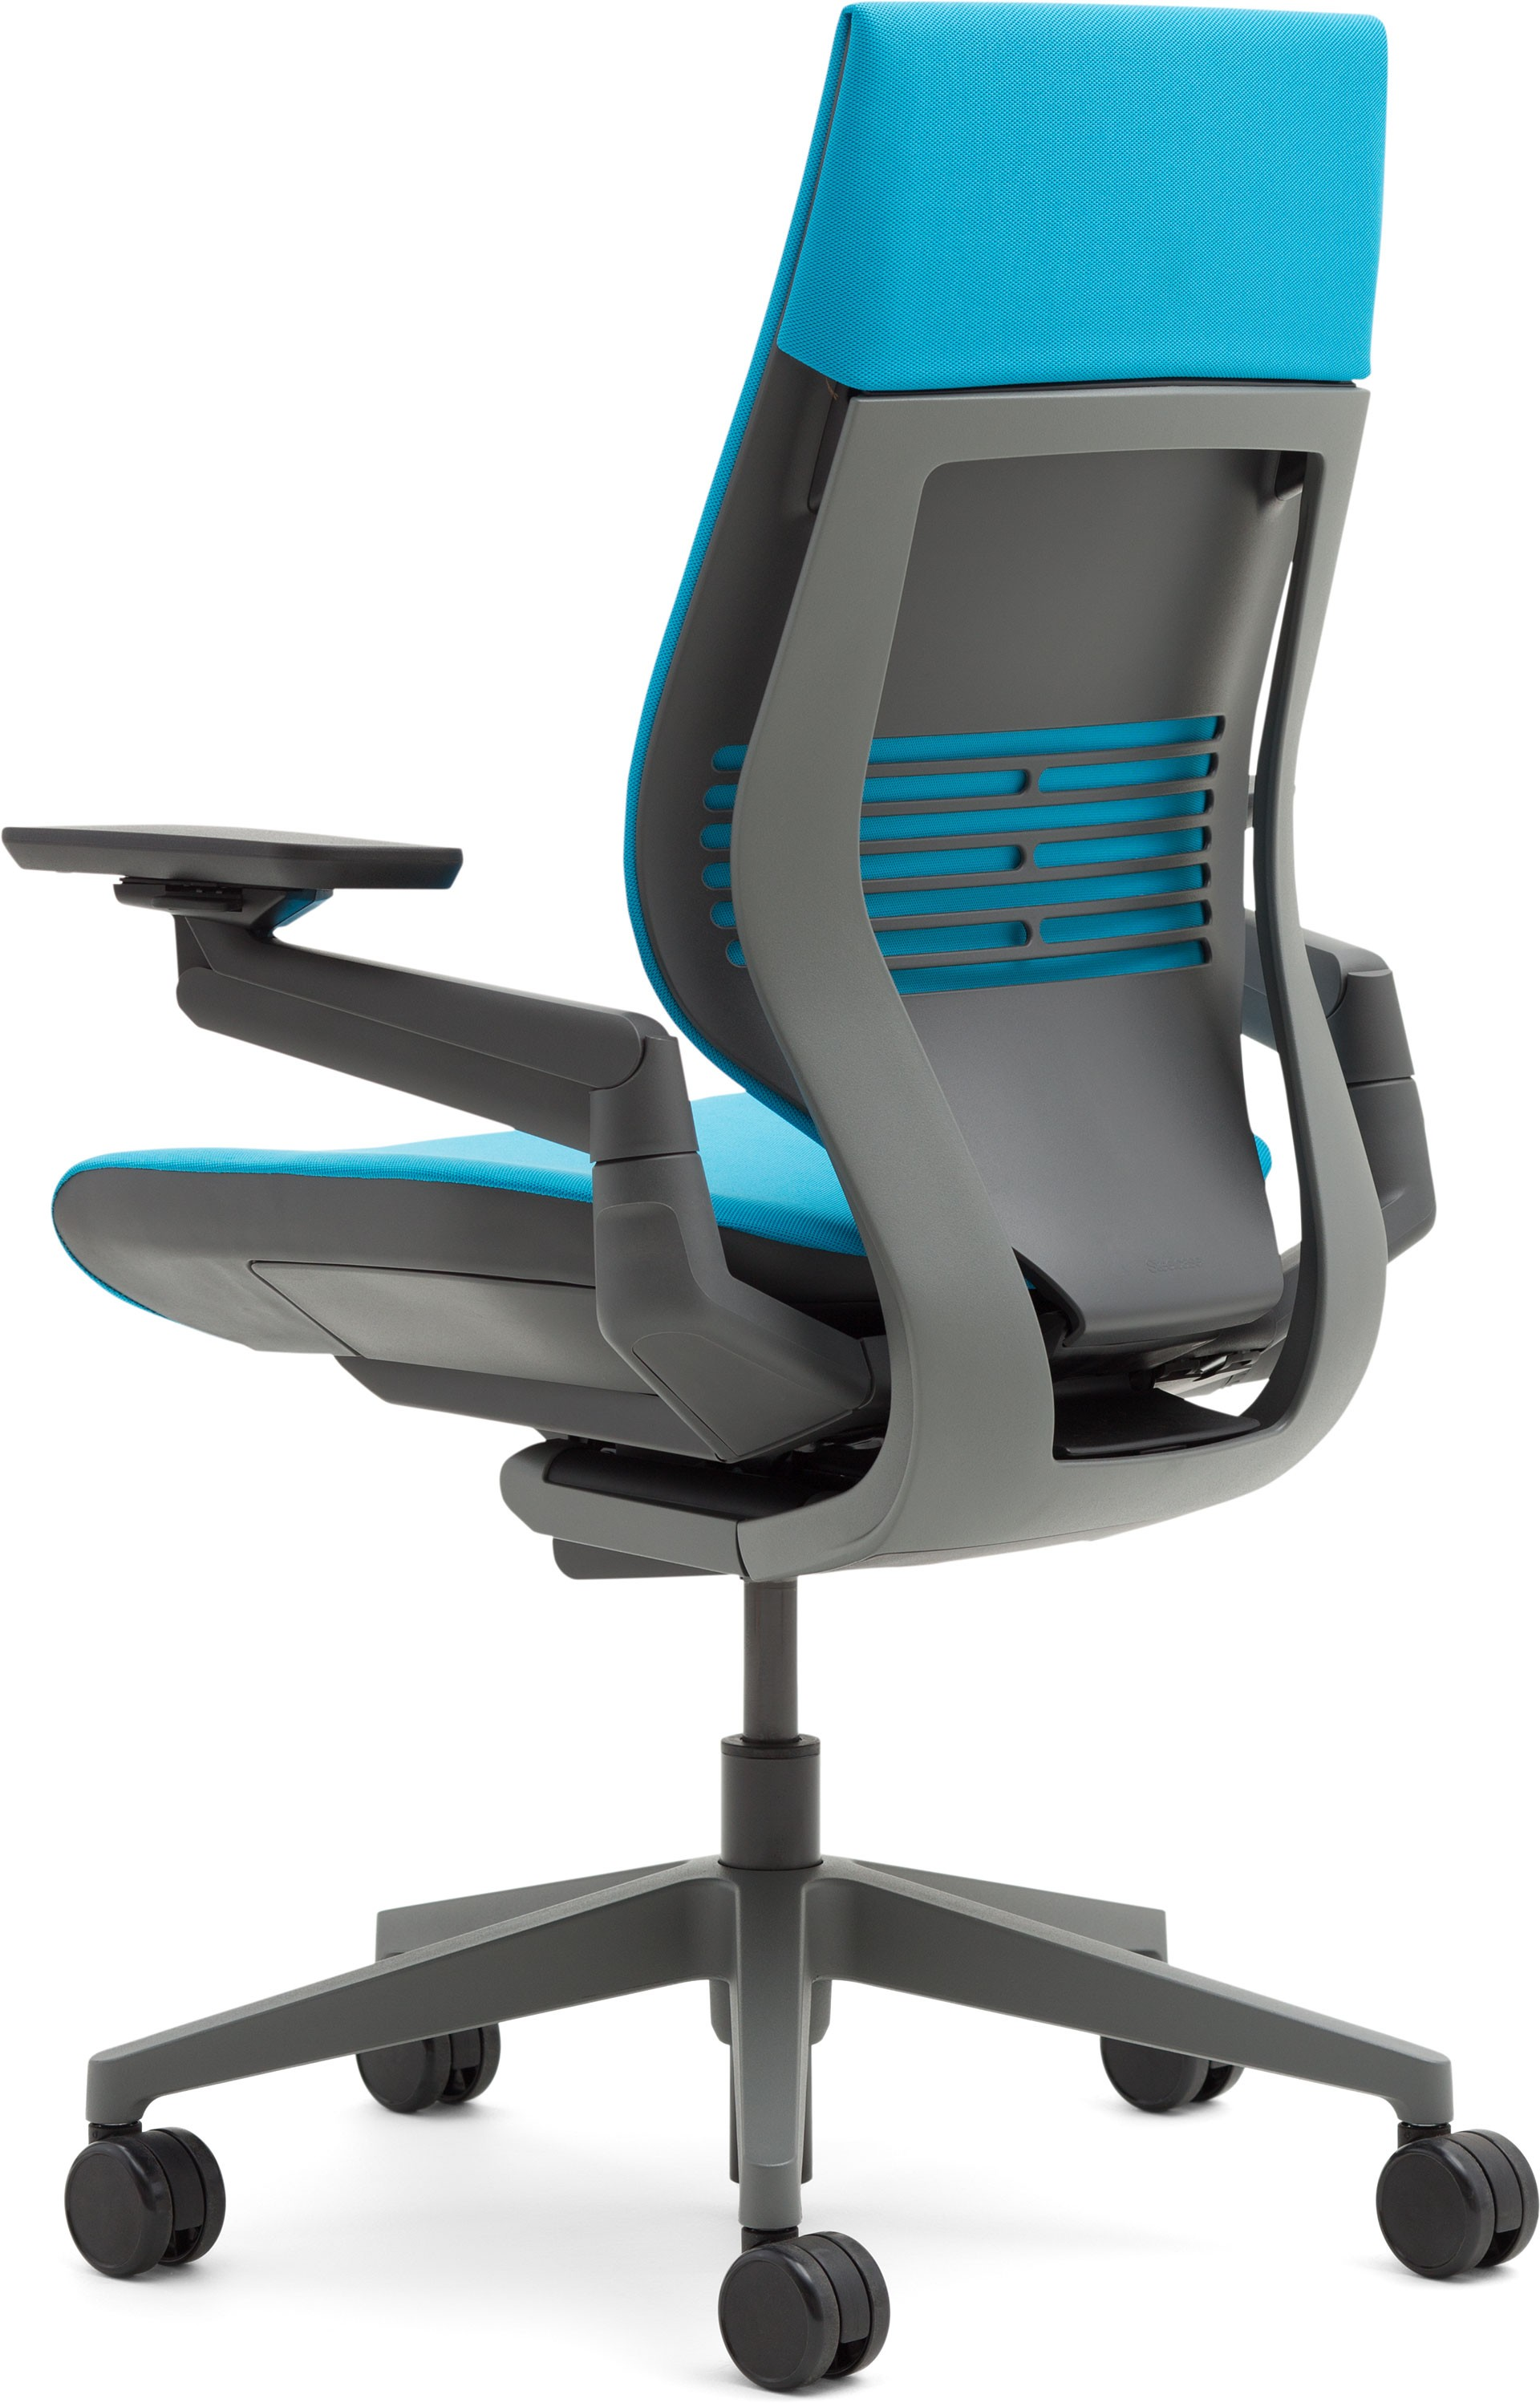 Superieur ... Steelcase Gesture Office Chair With Wrapped Back Side Dark/Dark Blue  Jay Cogent Connect ...